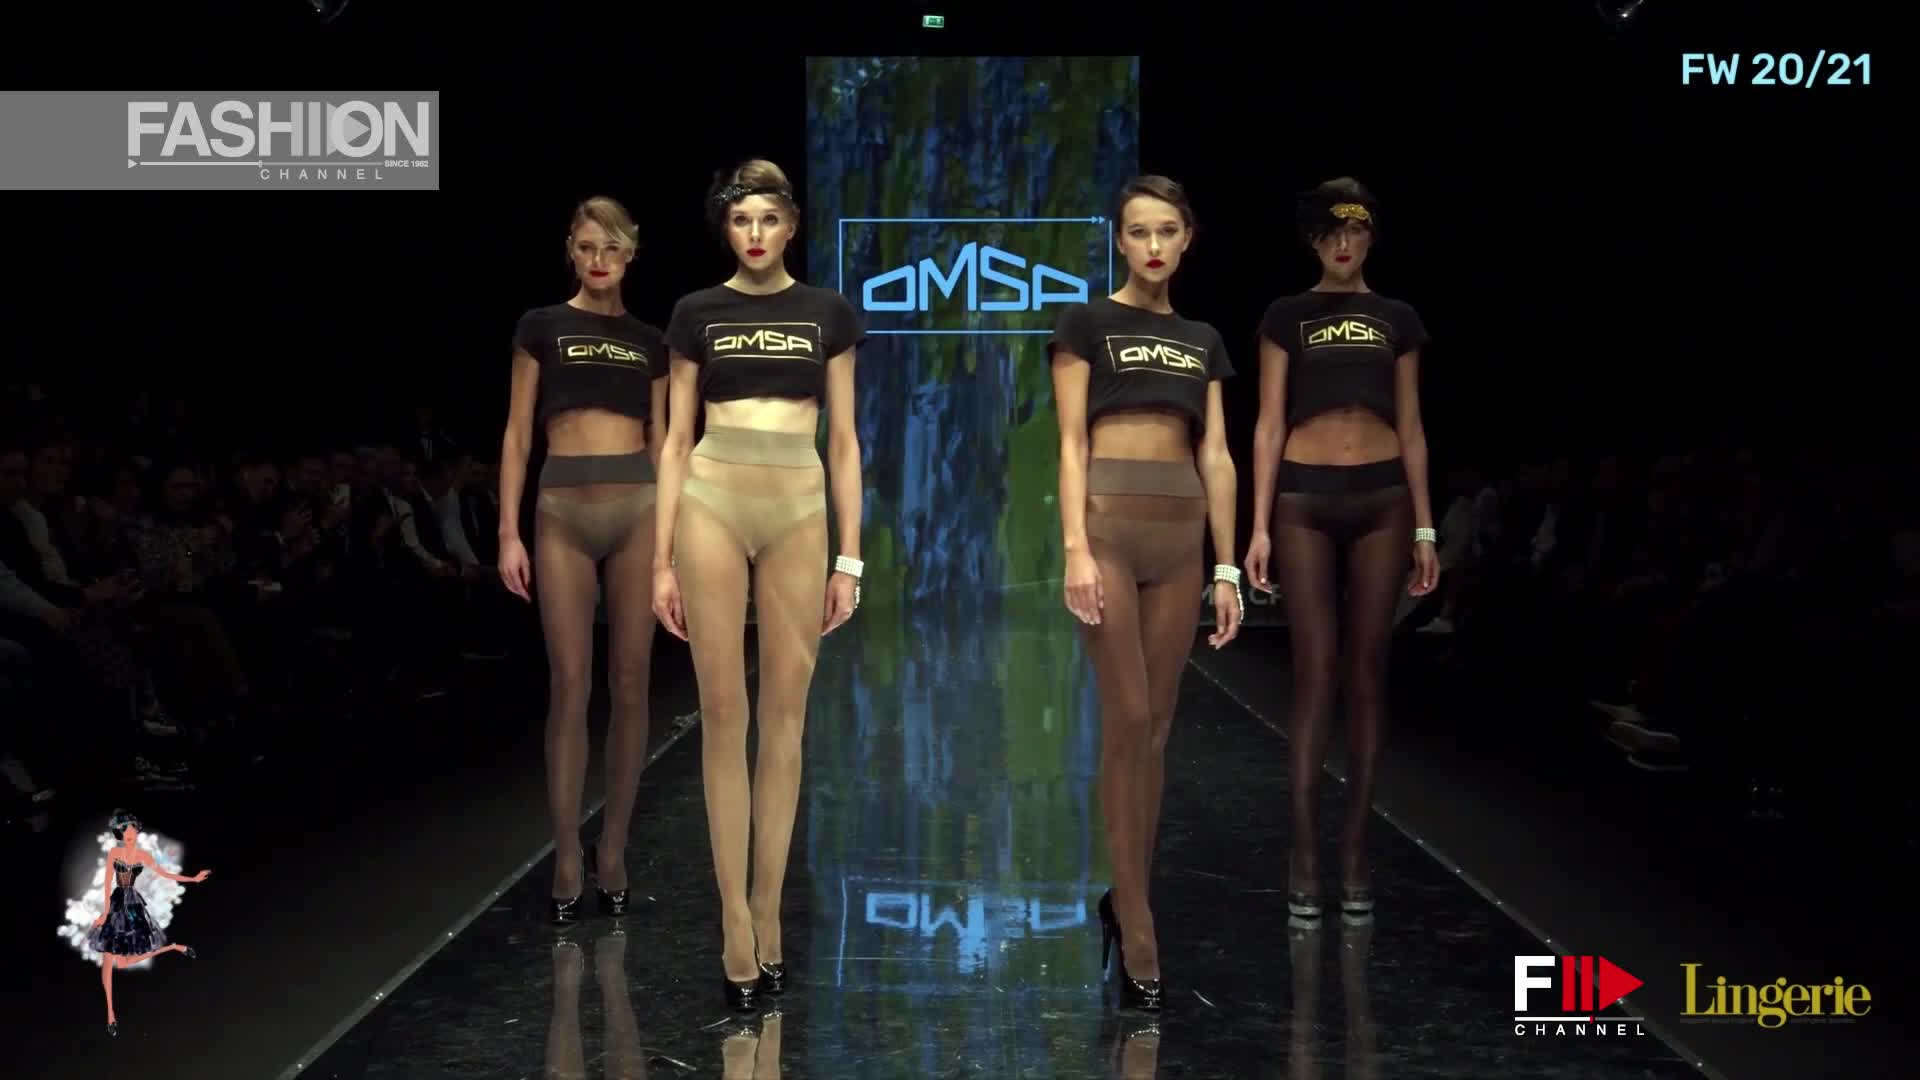 OMSA - GRAND DEFILE Lingerie Magazine Fall 2020 CPM Moscow - Fashion Channel